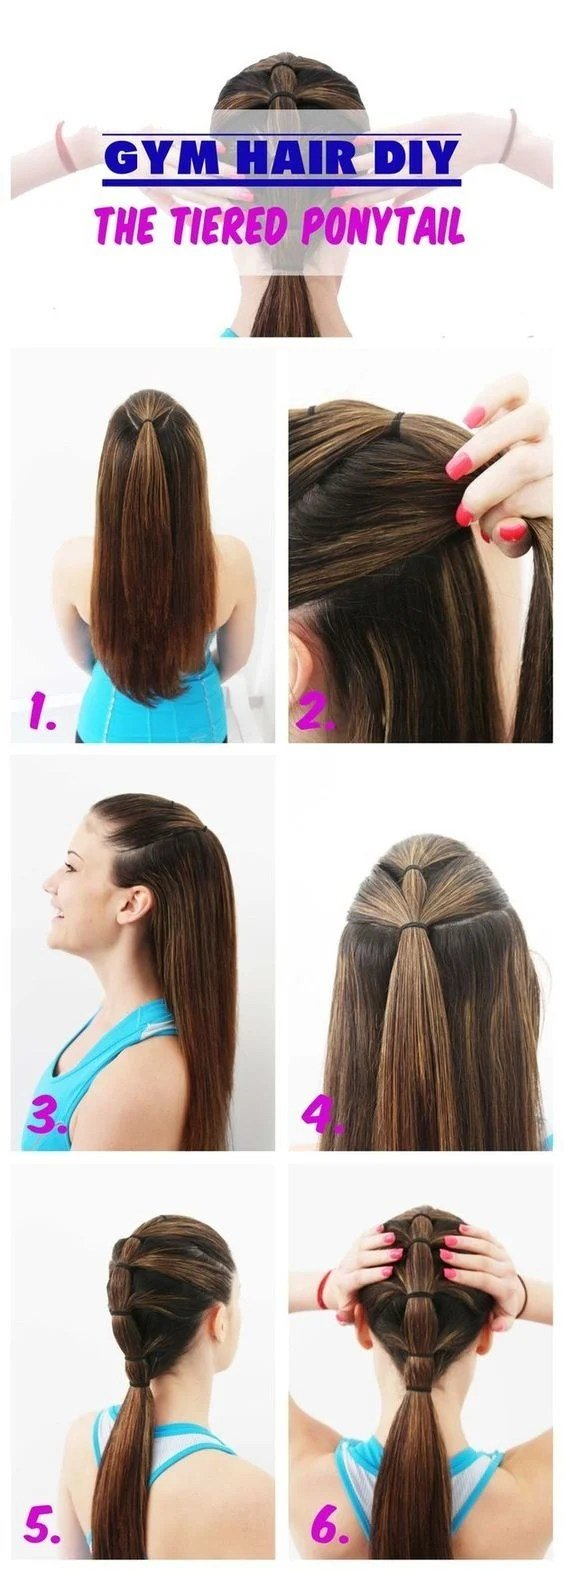 Free 22 Quick And Easy Back To School Hairstyle Tutorials Wallpaper